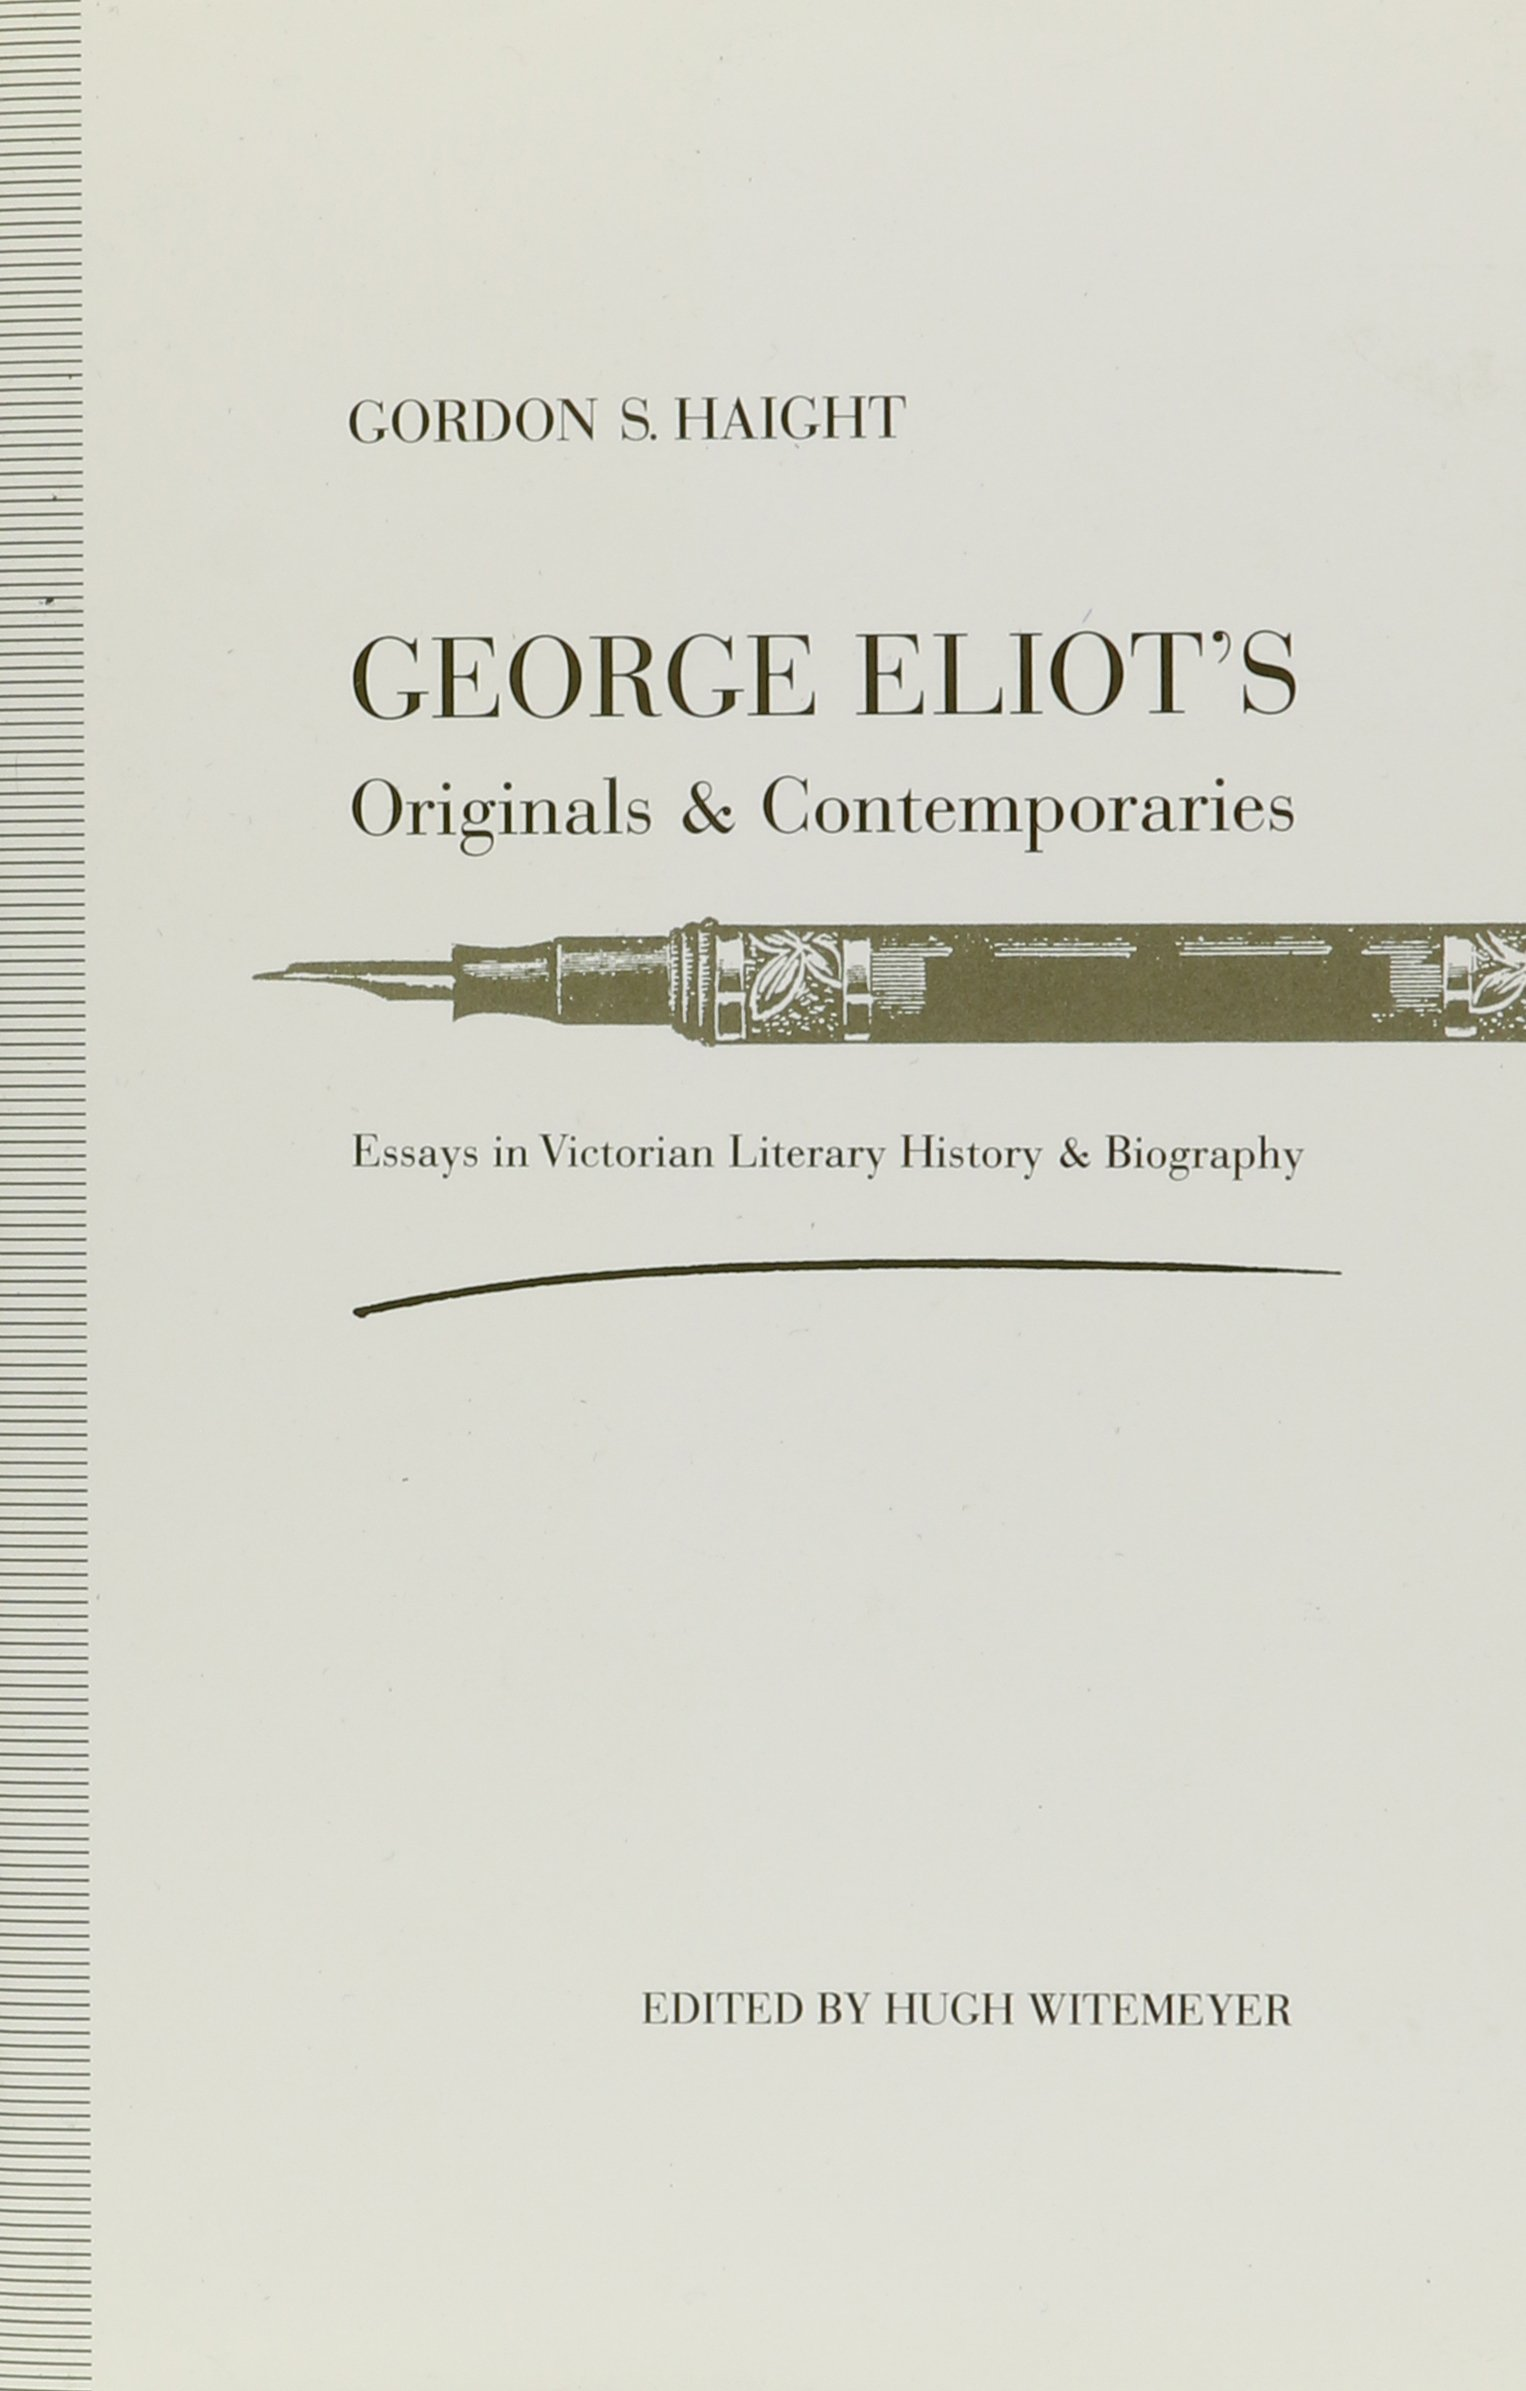 com george eliot s originals and contemporaries essays in  com george eliot s originals and contemporaries essays in victorian literary history and biography 9780472102648 gordon s haight books